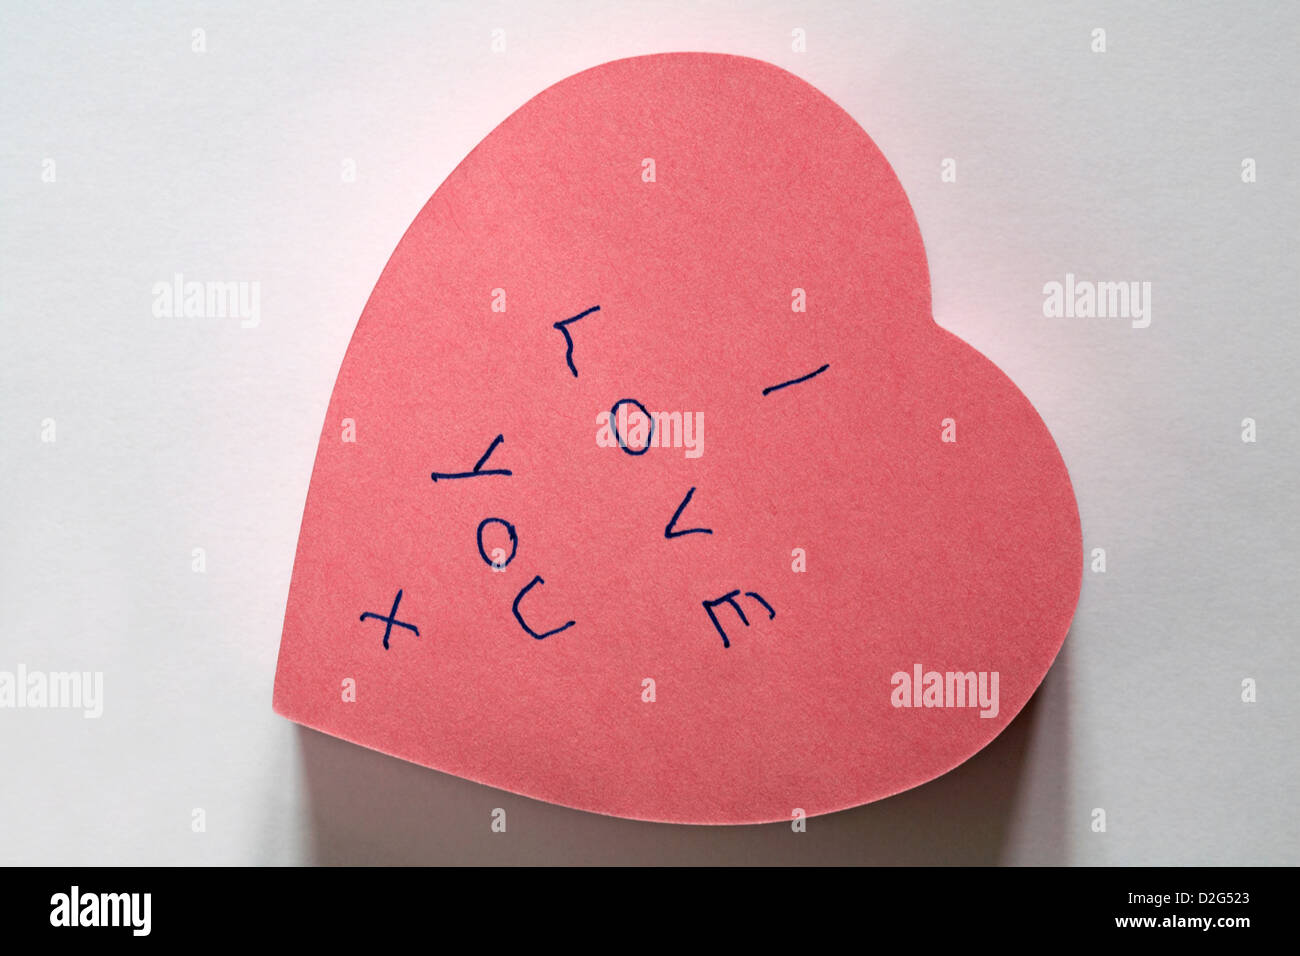 I Love you x message written on pink heart shaped post it note pad isolated on white background - Stock Image